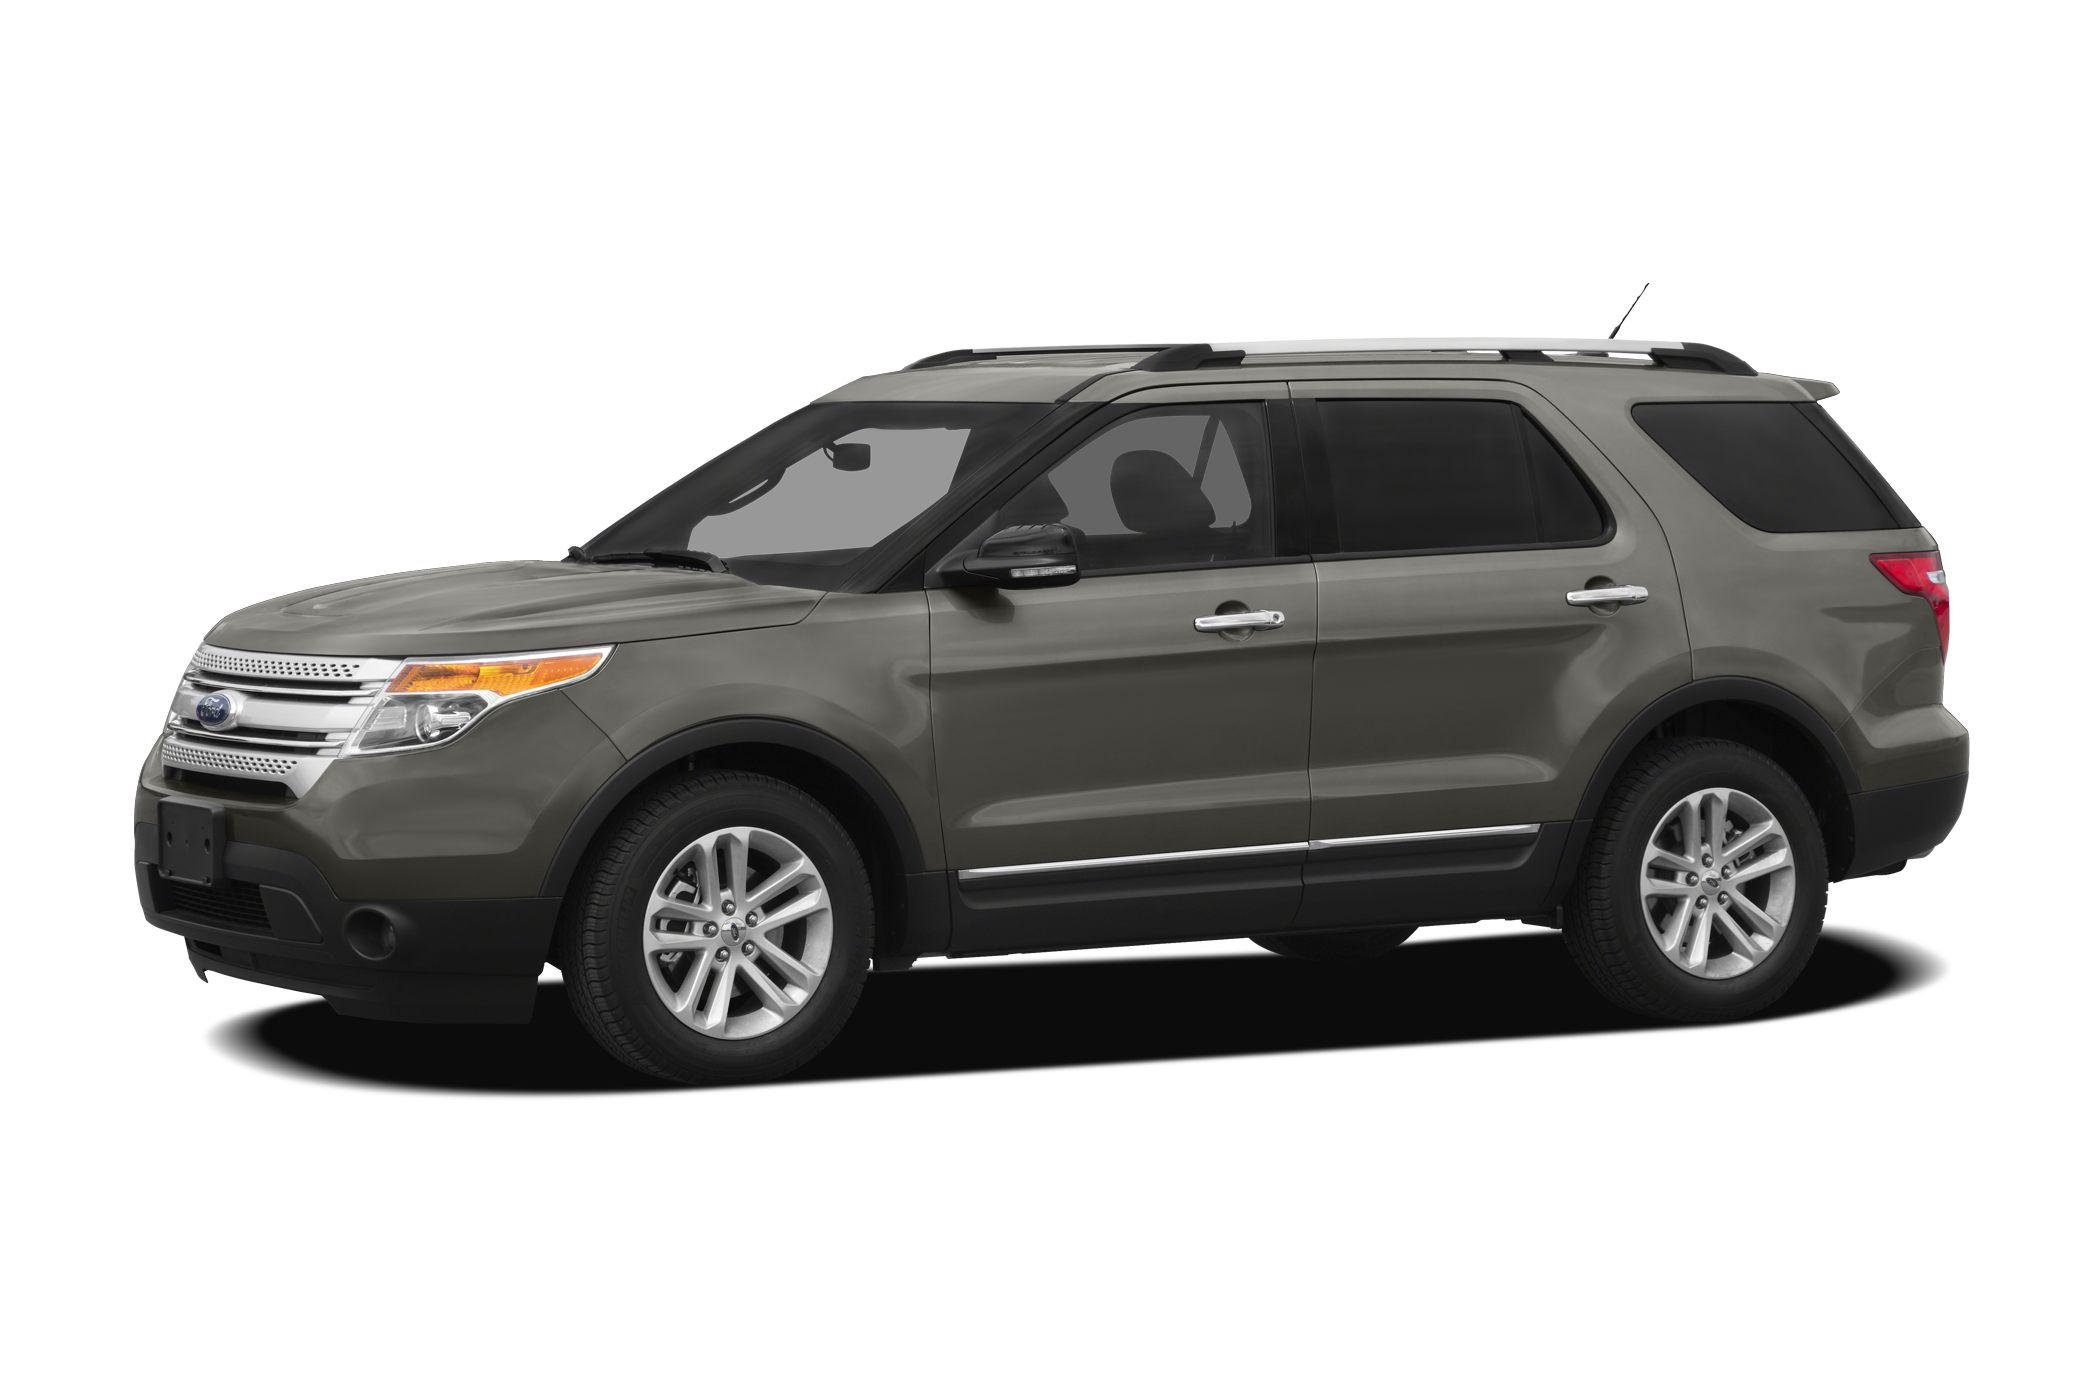 2011 Ford Explorer XLT SUV for sale in Collins for $24,950 with 70,315 miles.